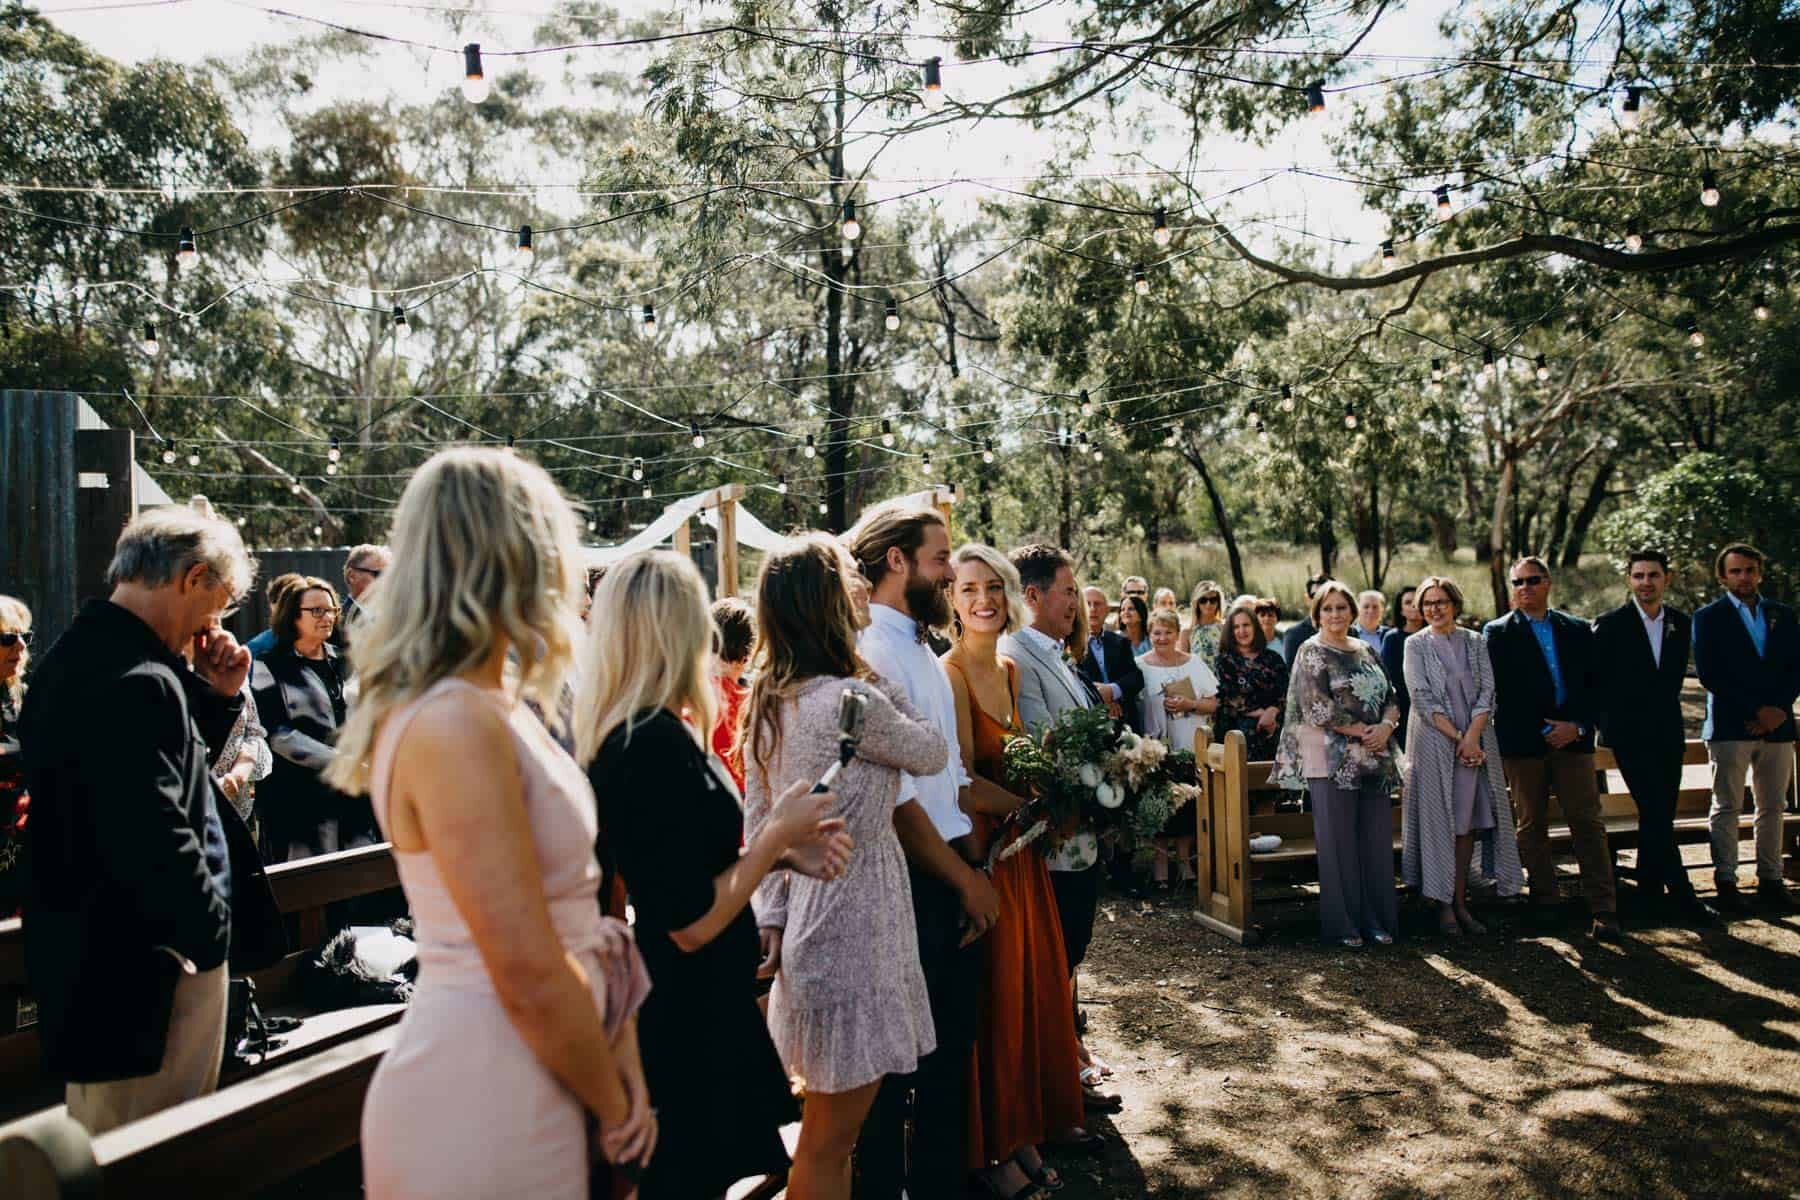 boho wedding at Bellbrae Harvest in Torquay